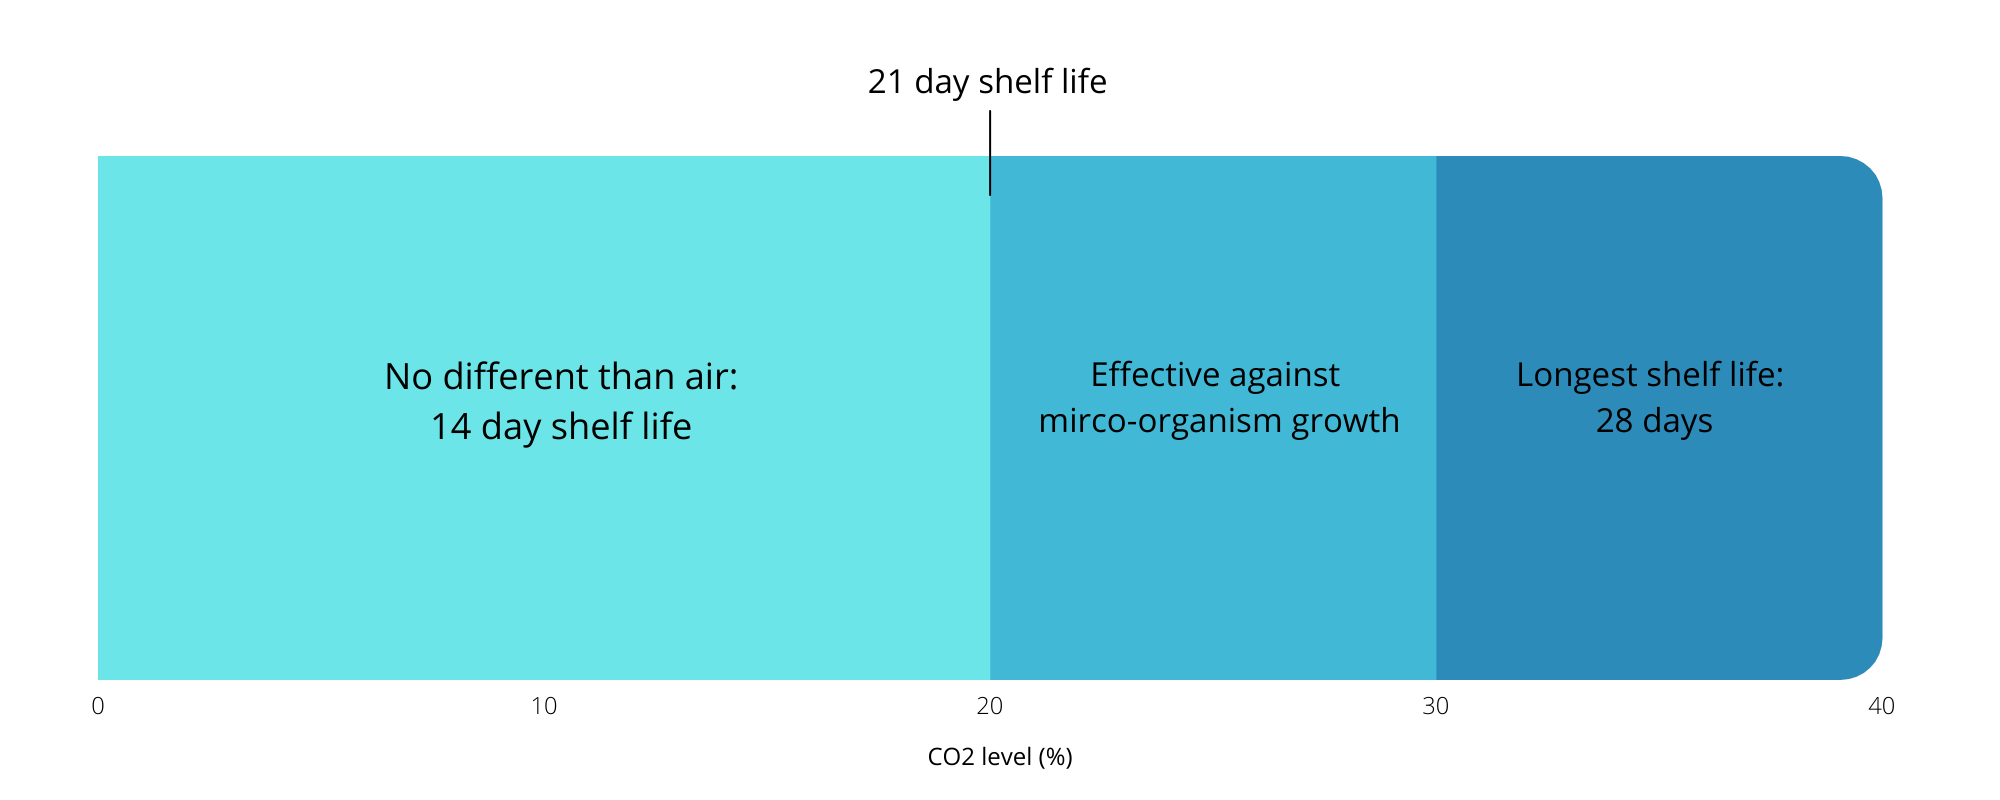 CO2 levels in packaging